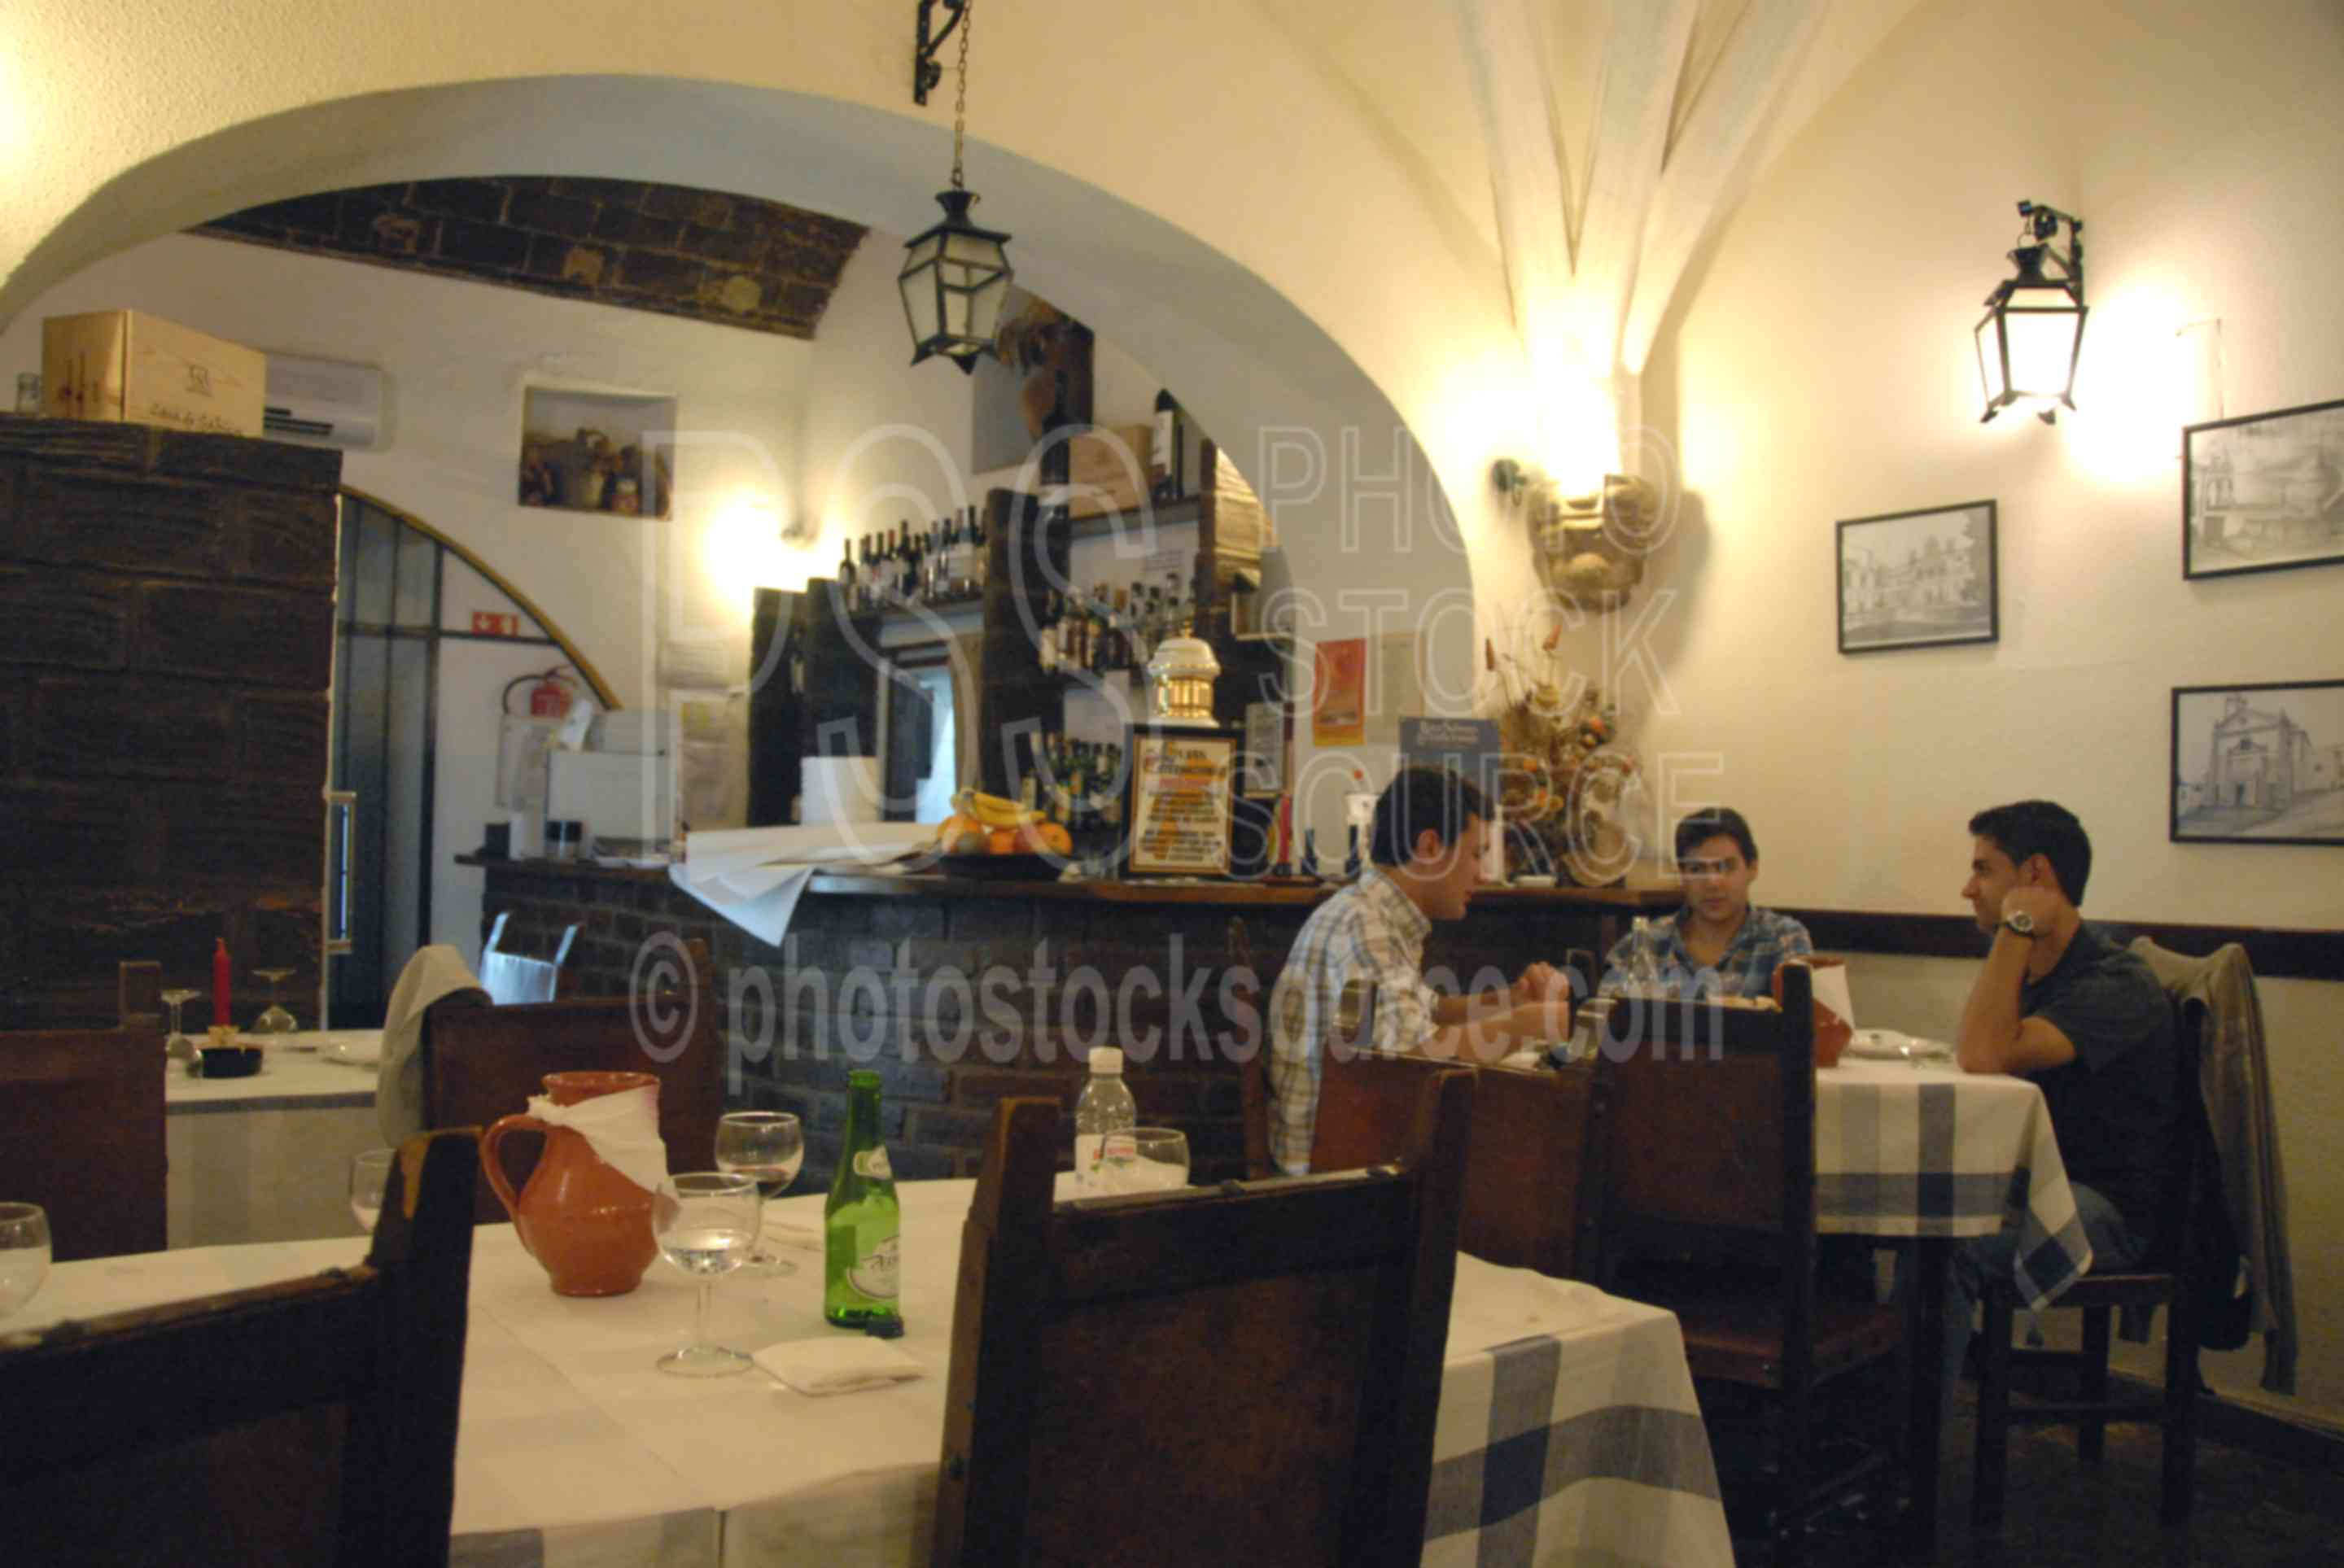 Restaurante Taverna,restaurant,dining,dinner,eating